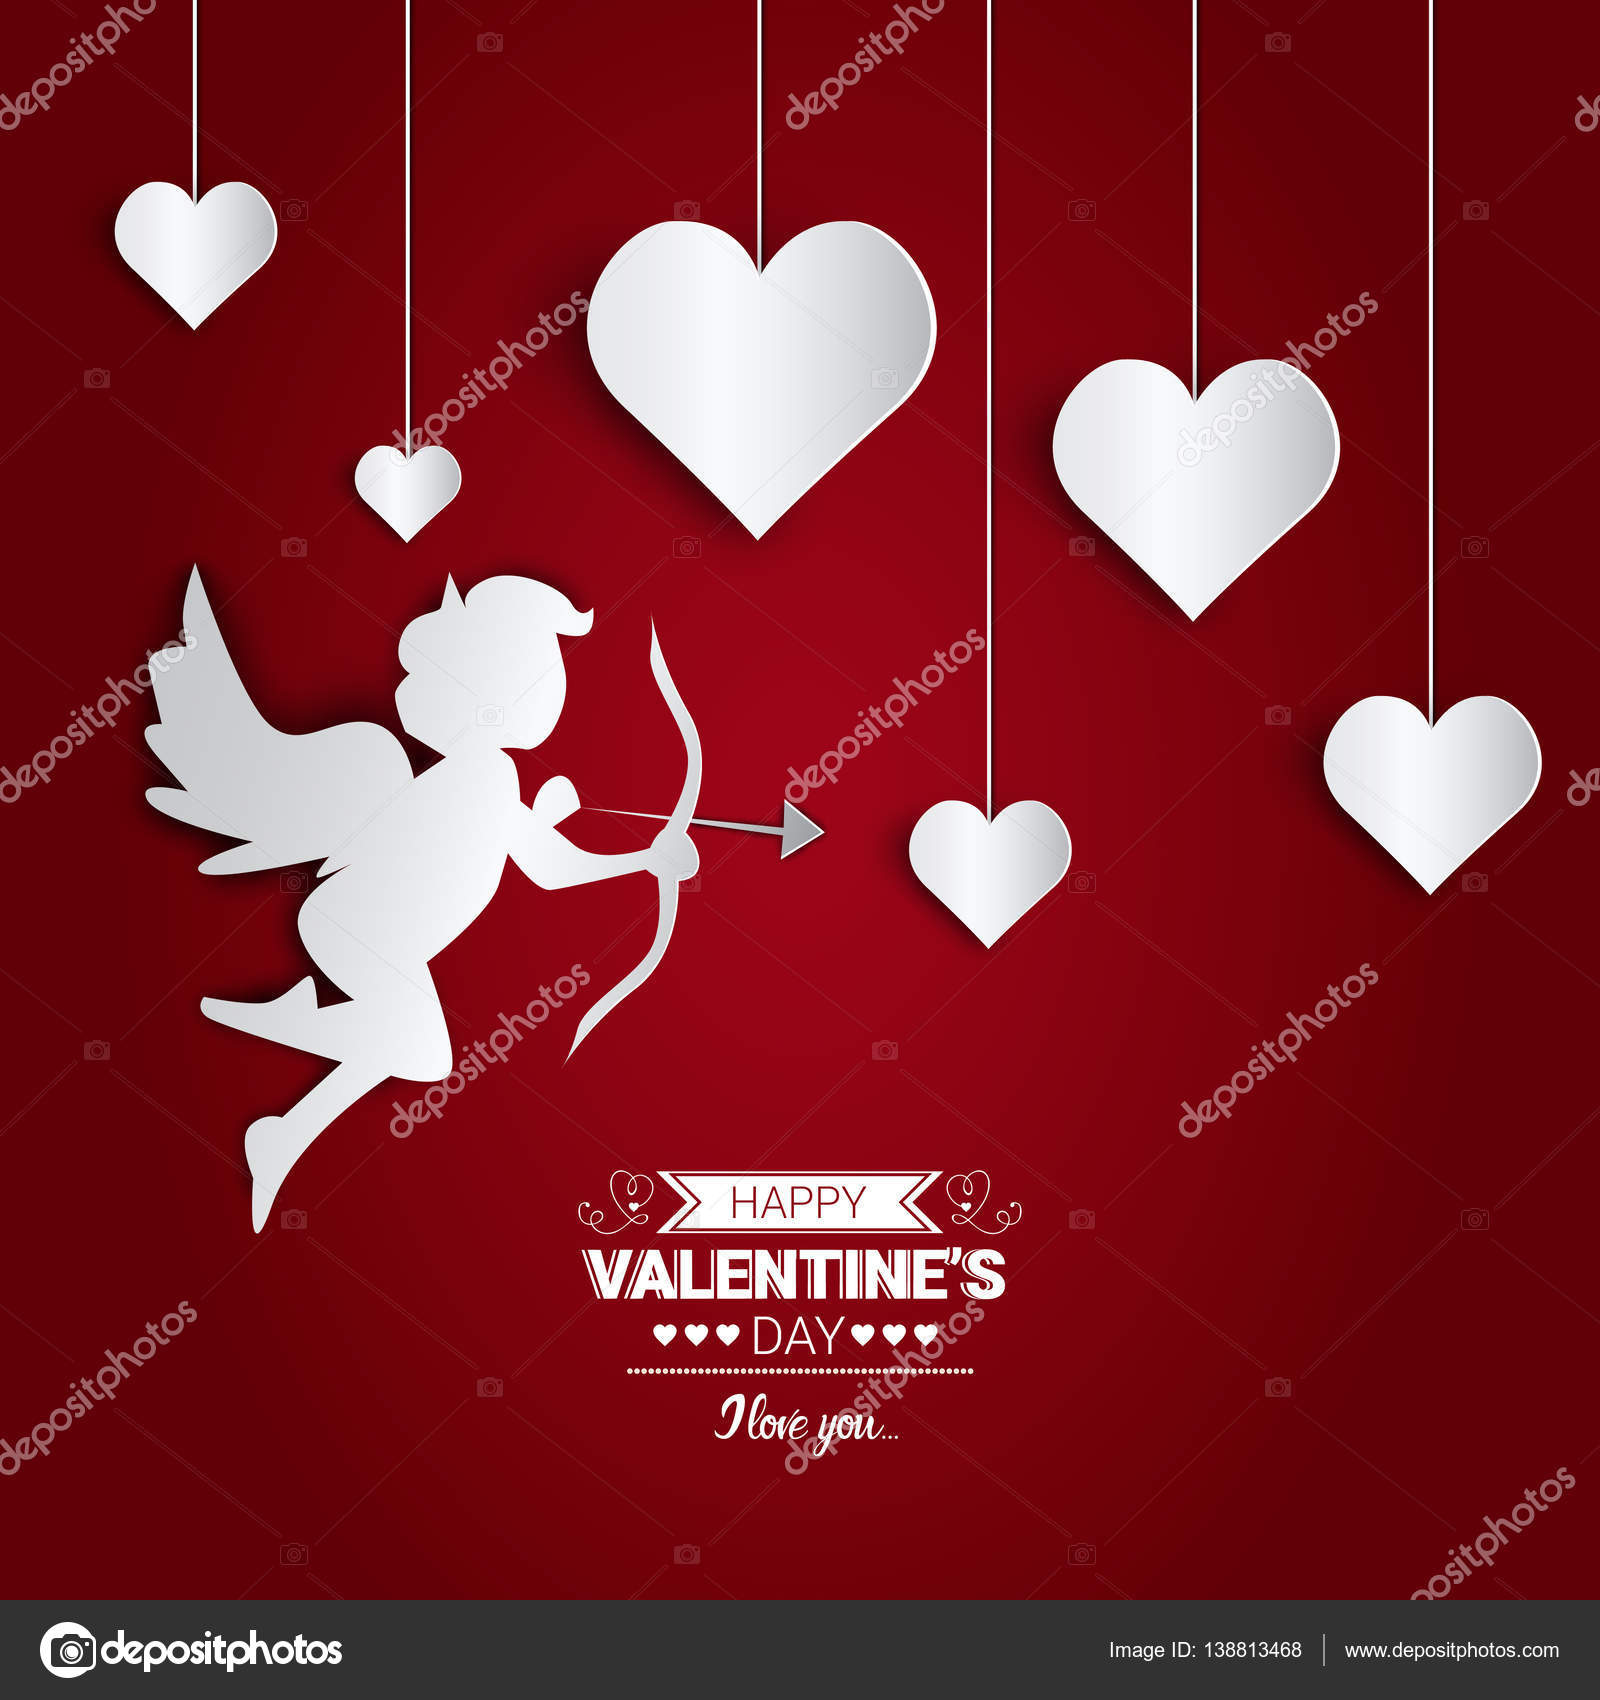 Valentine Day Gift Card Holiday Love Herzform Stockvektor Mast3r